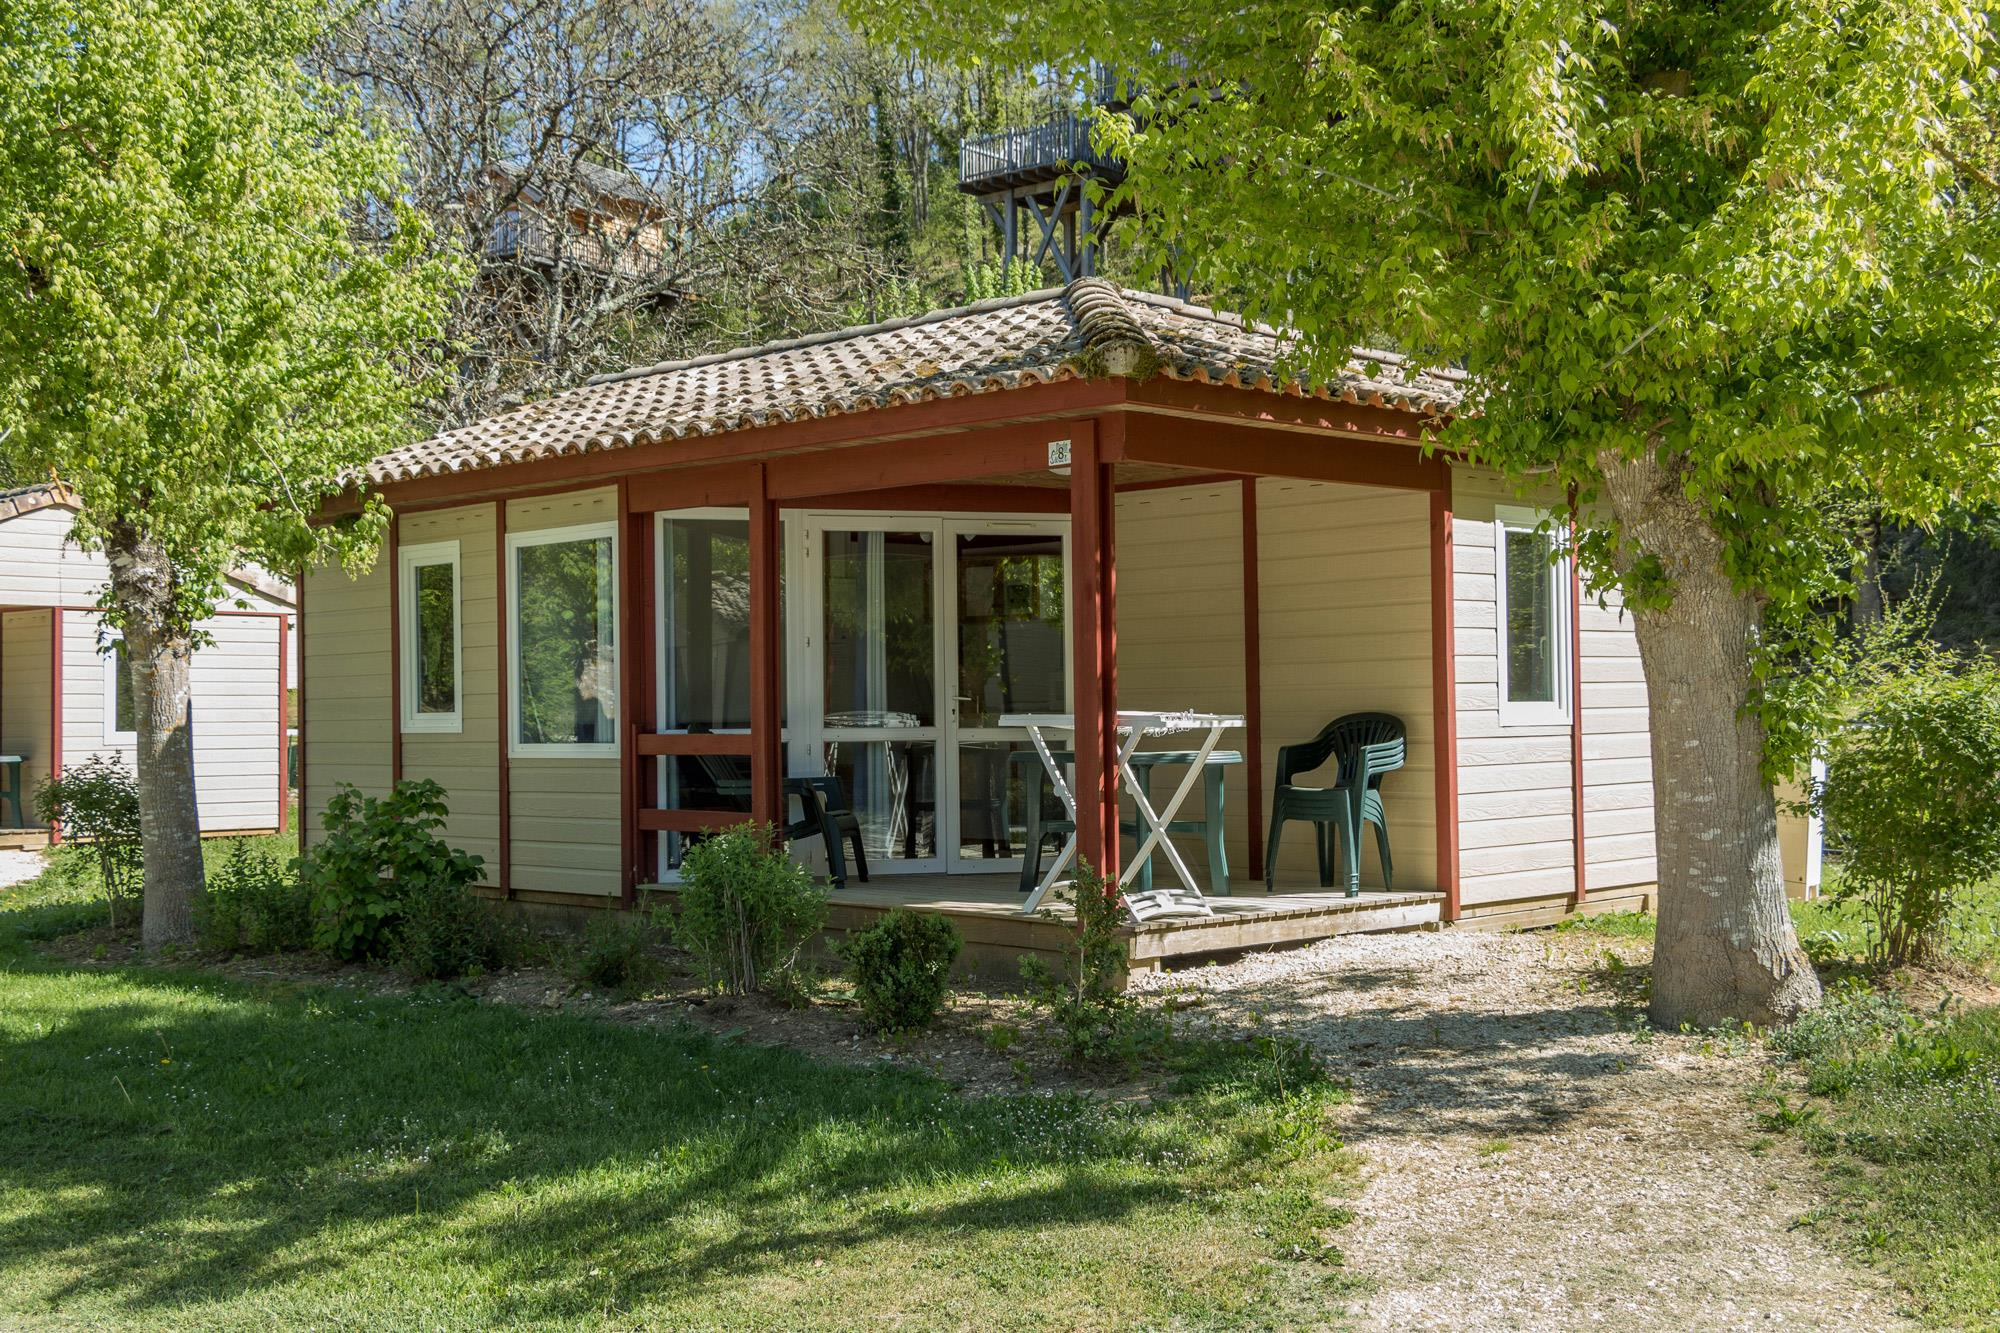 Location - Chalet Reve - Camping Village le Moulin de Surier